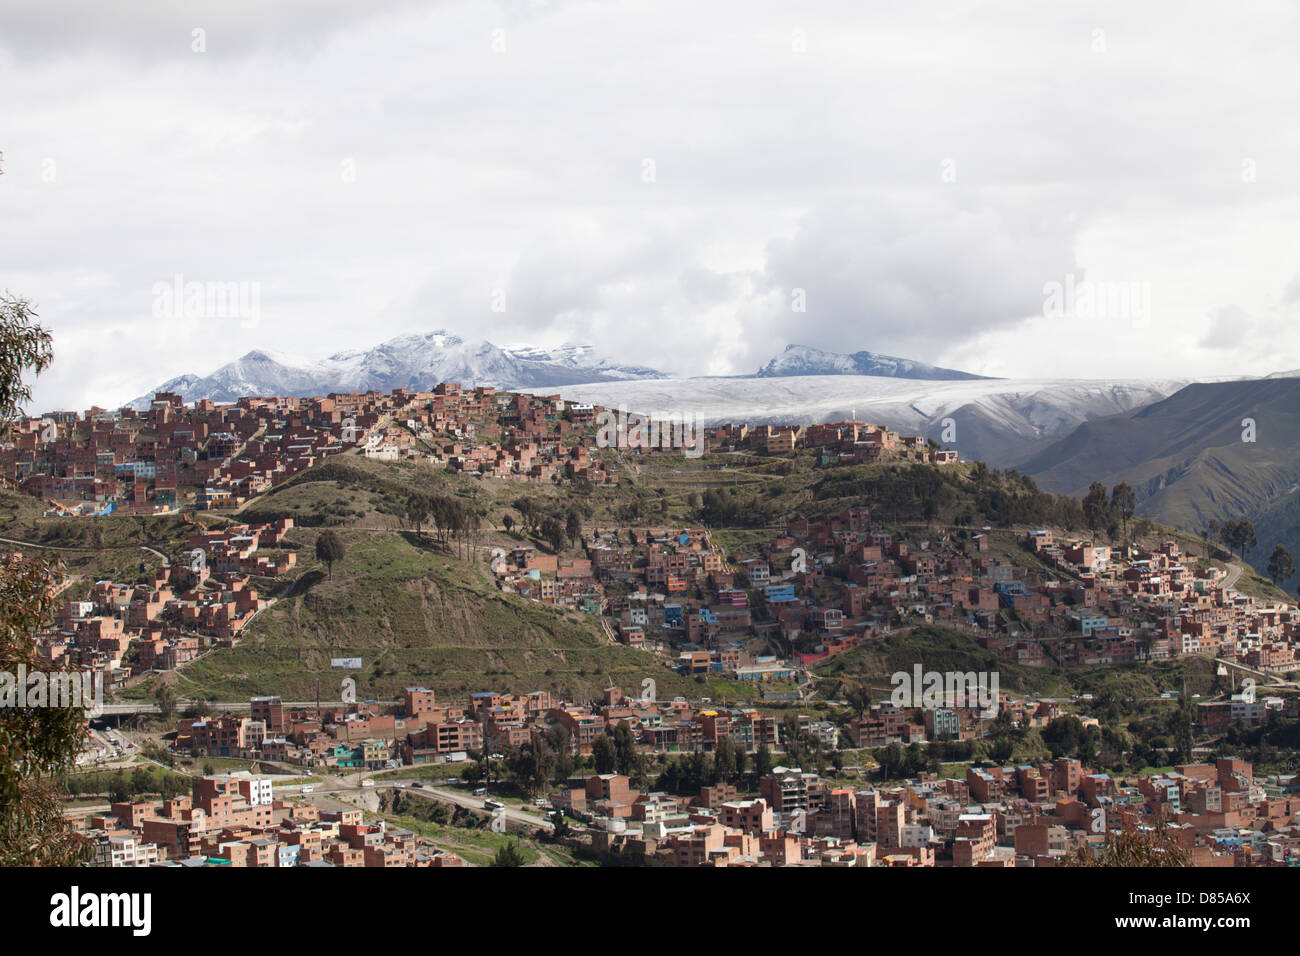 El Alto, La Paz capital city in Bolivia - Stock Image